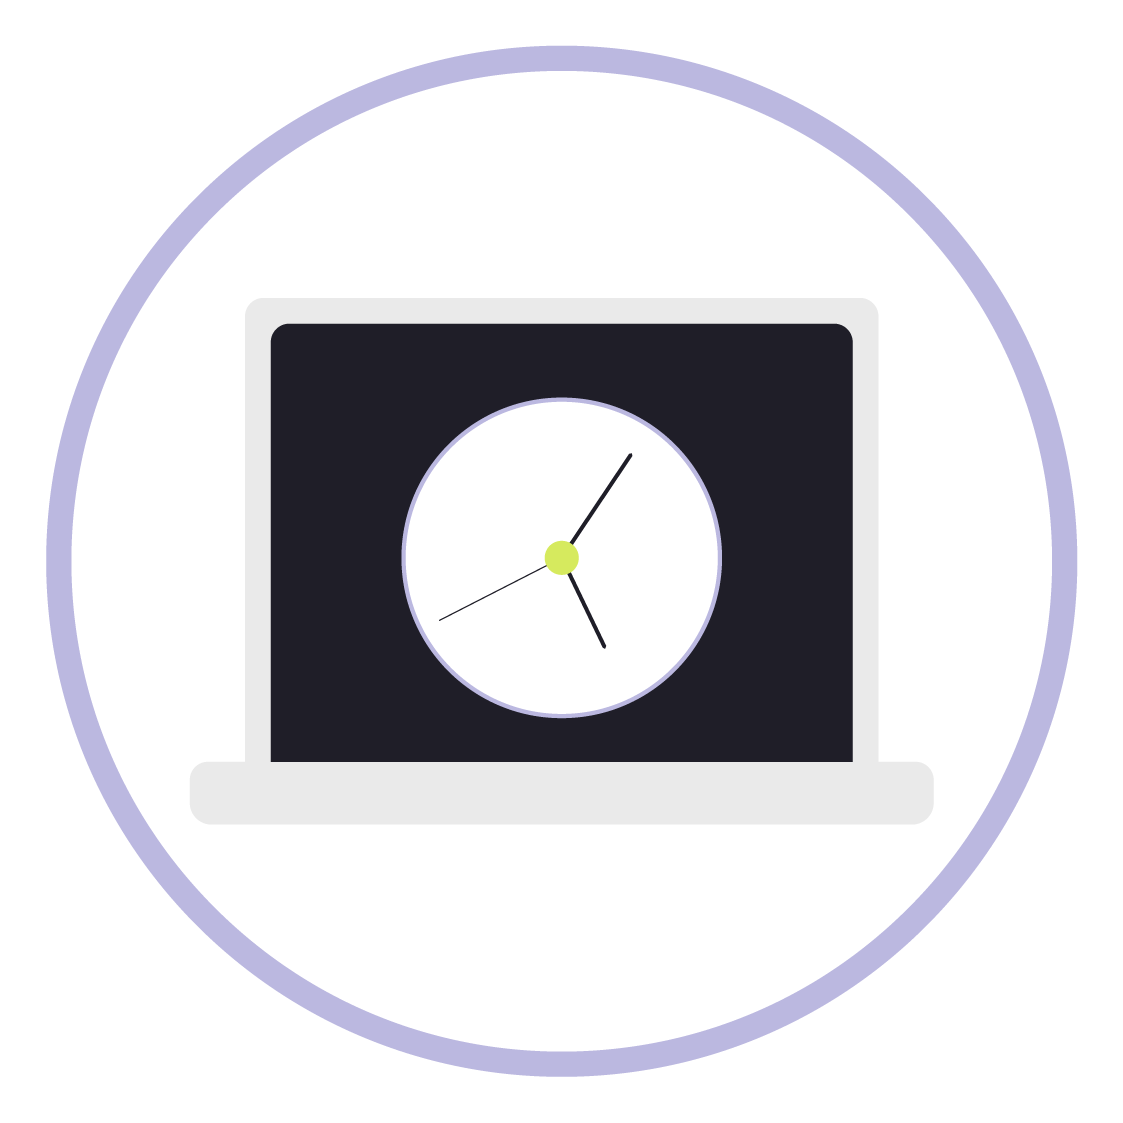 Services-Icons_Hourly-Services-Illustration.png